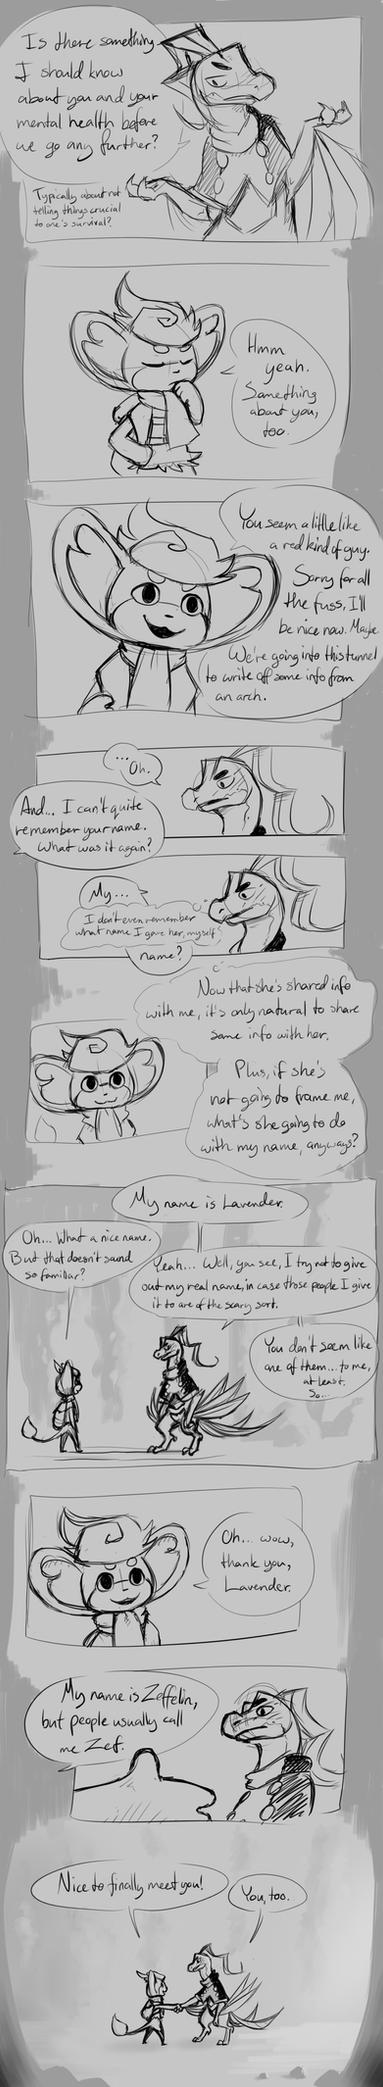 Team Stovefire | Monsters in caves P13 by Tecsinom